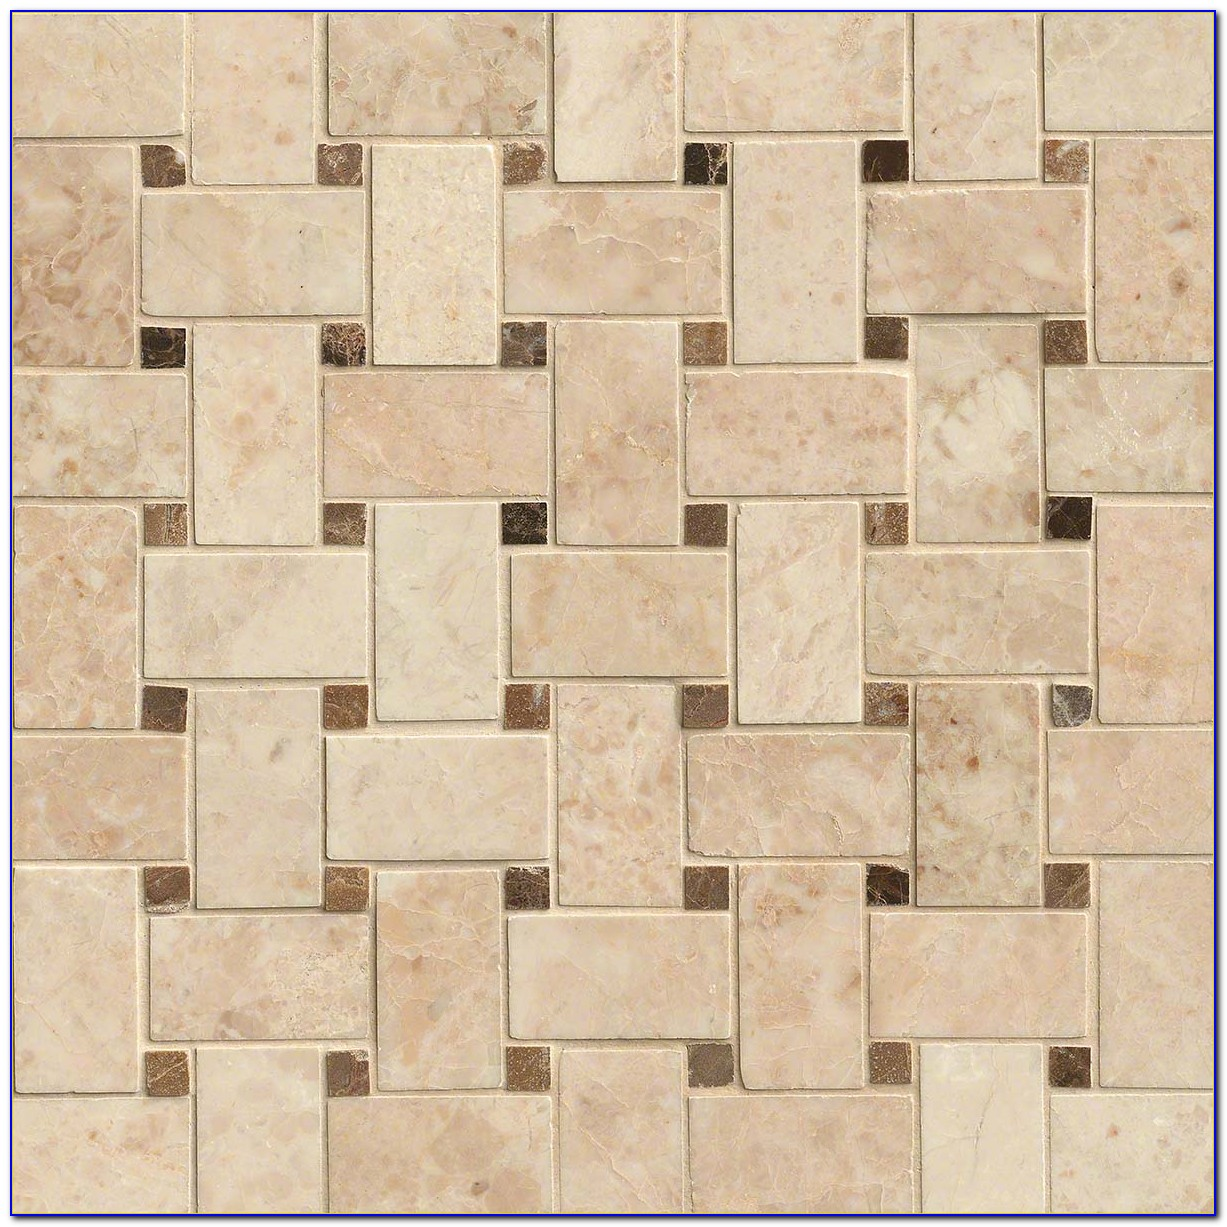 Basket Weave Tile Designs